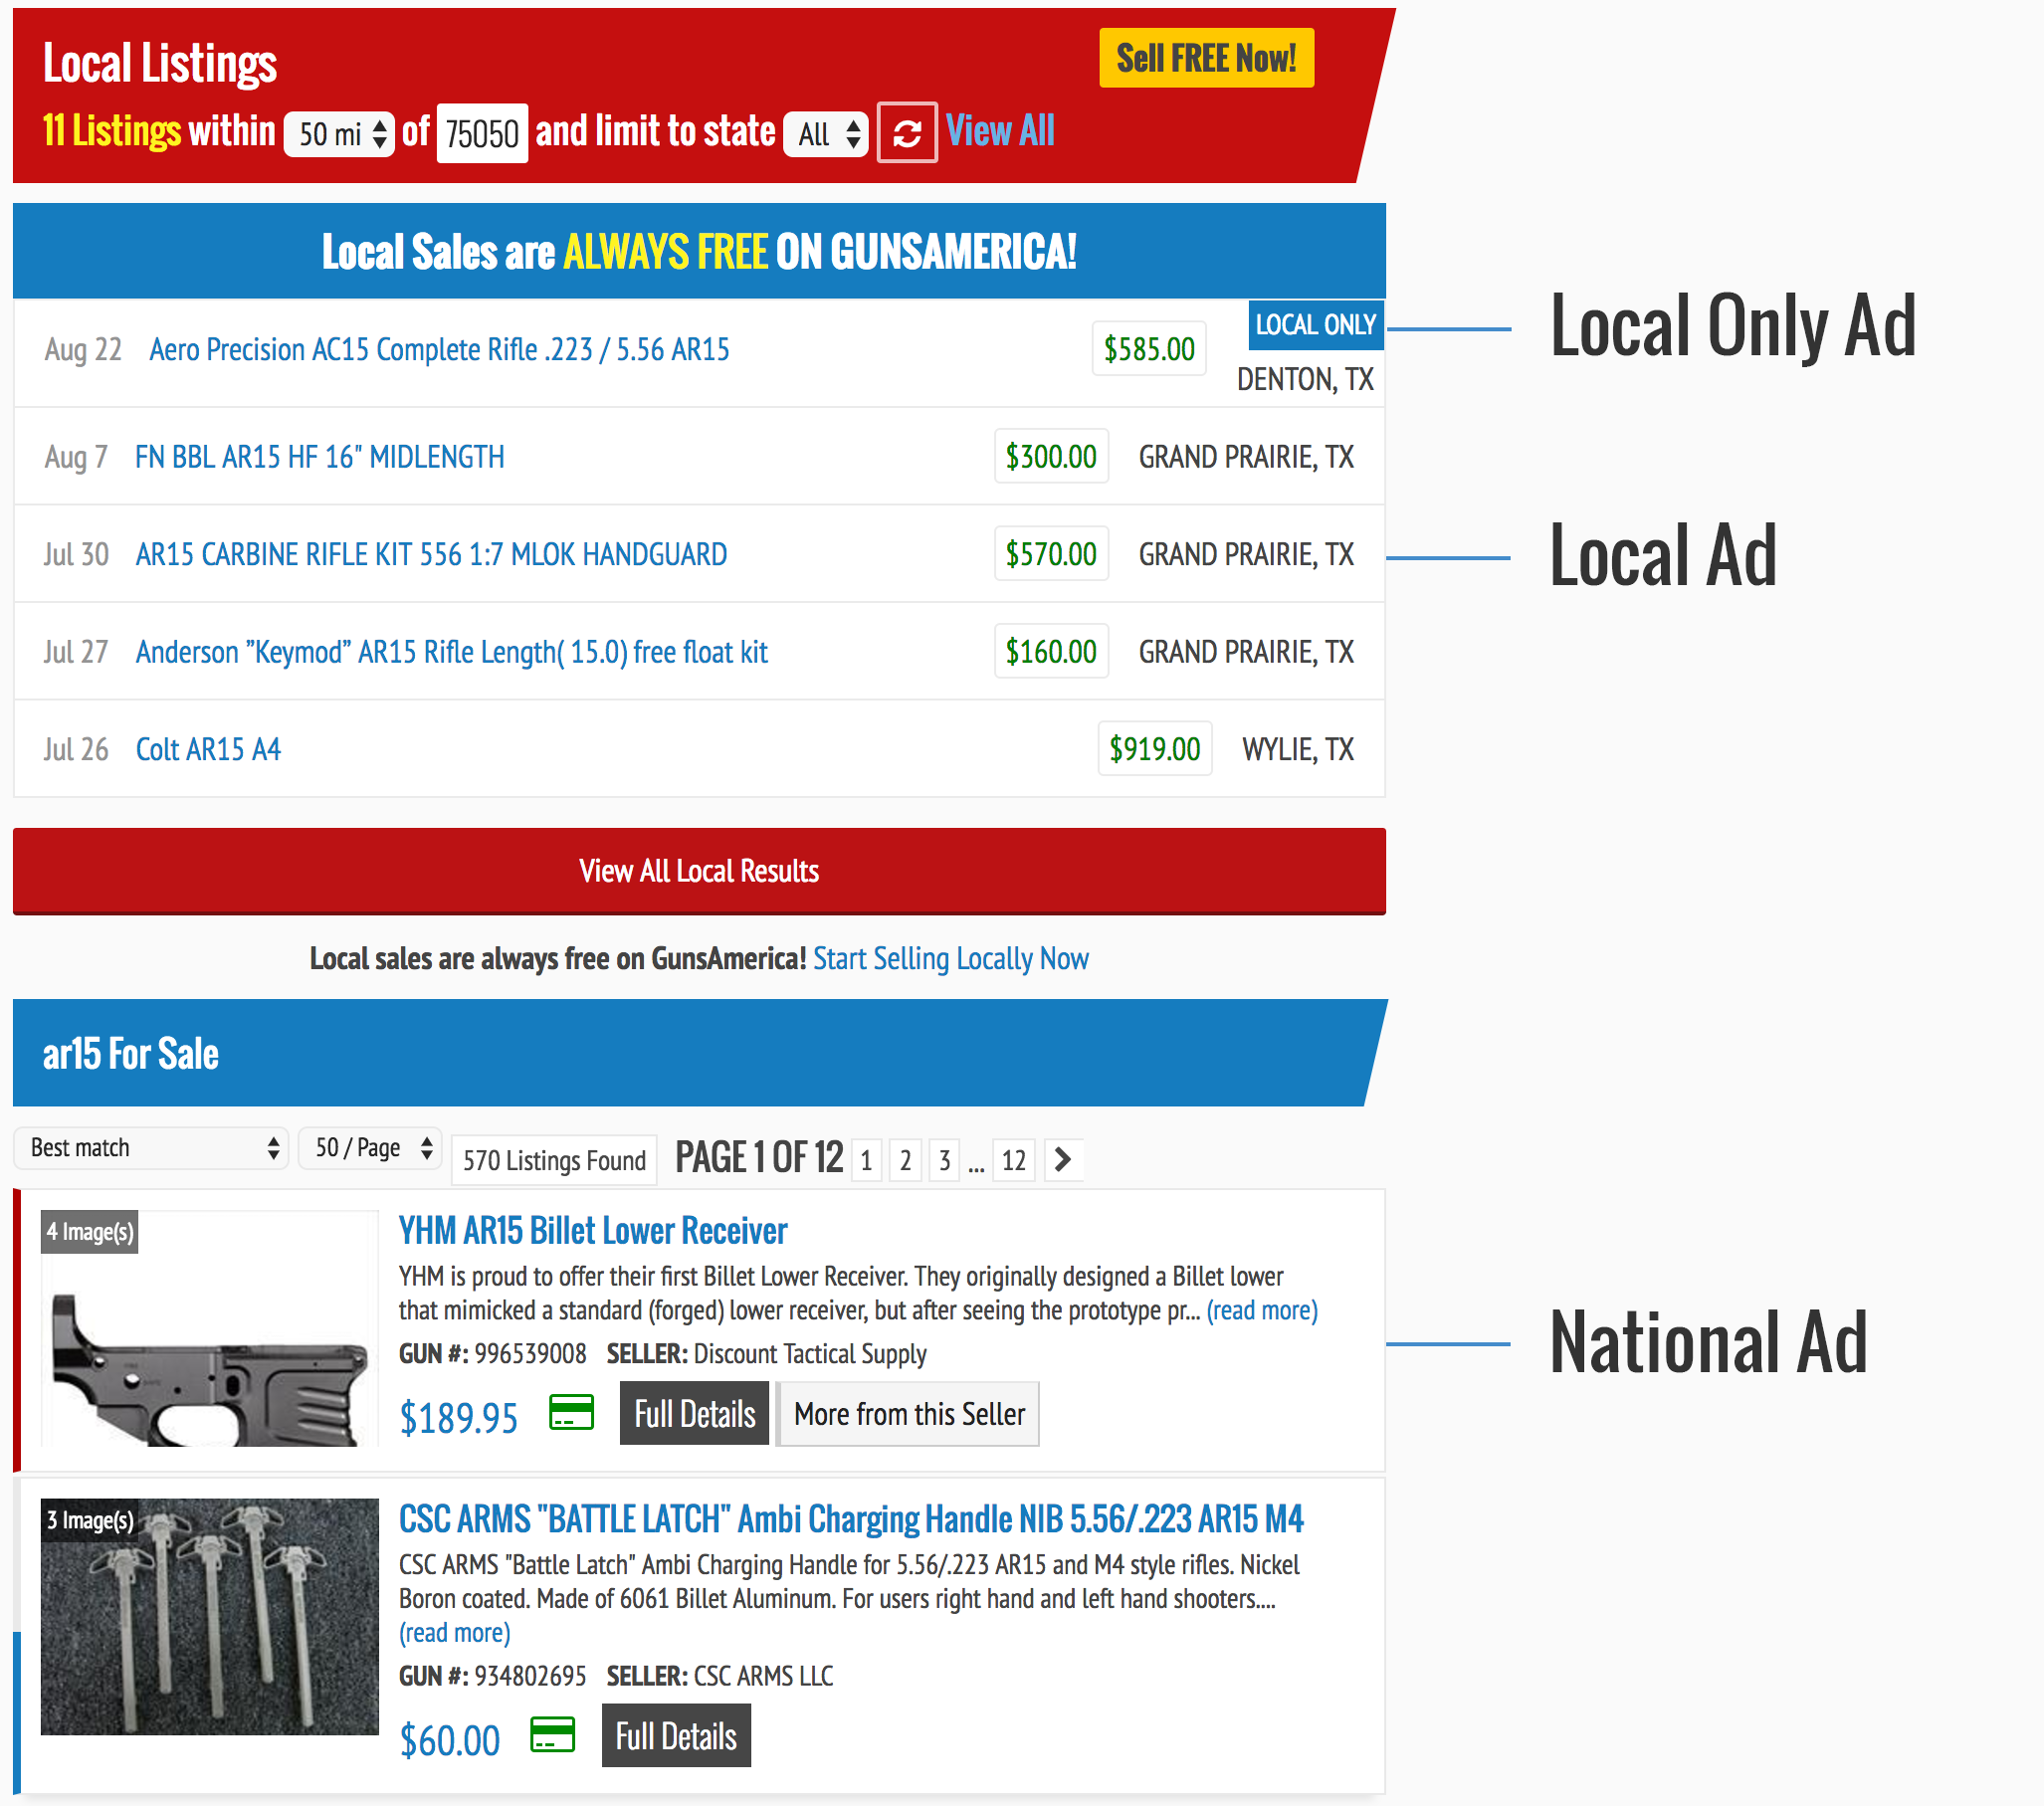 Ad Types on GunsAmerica